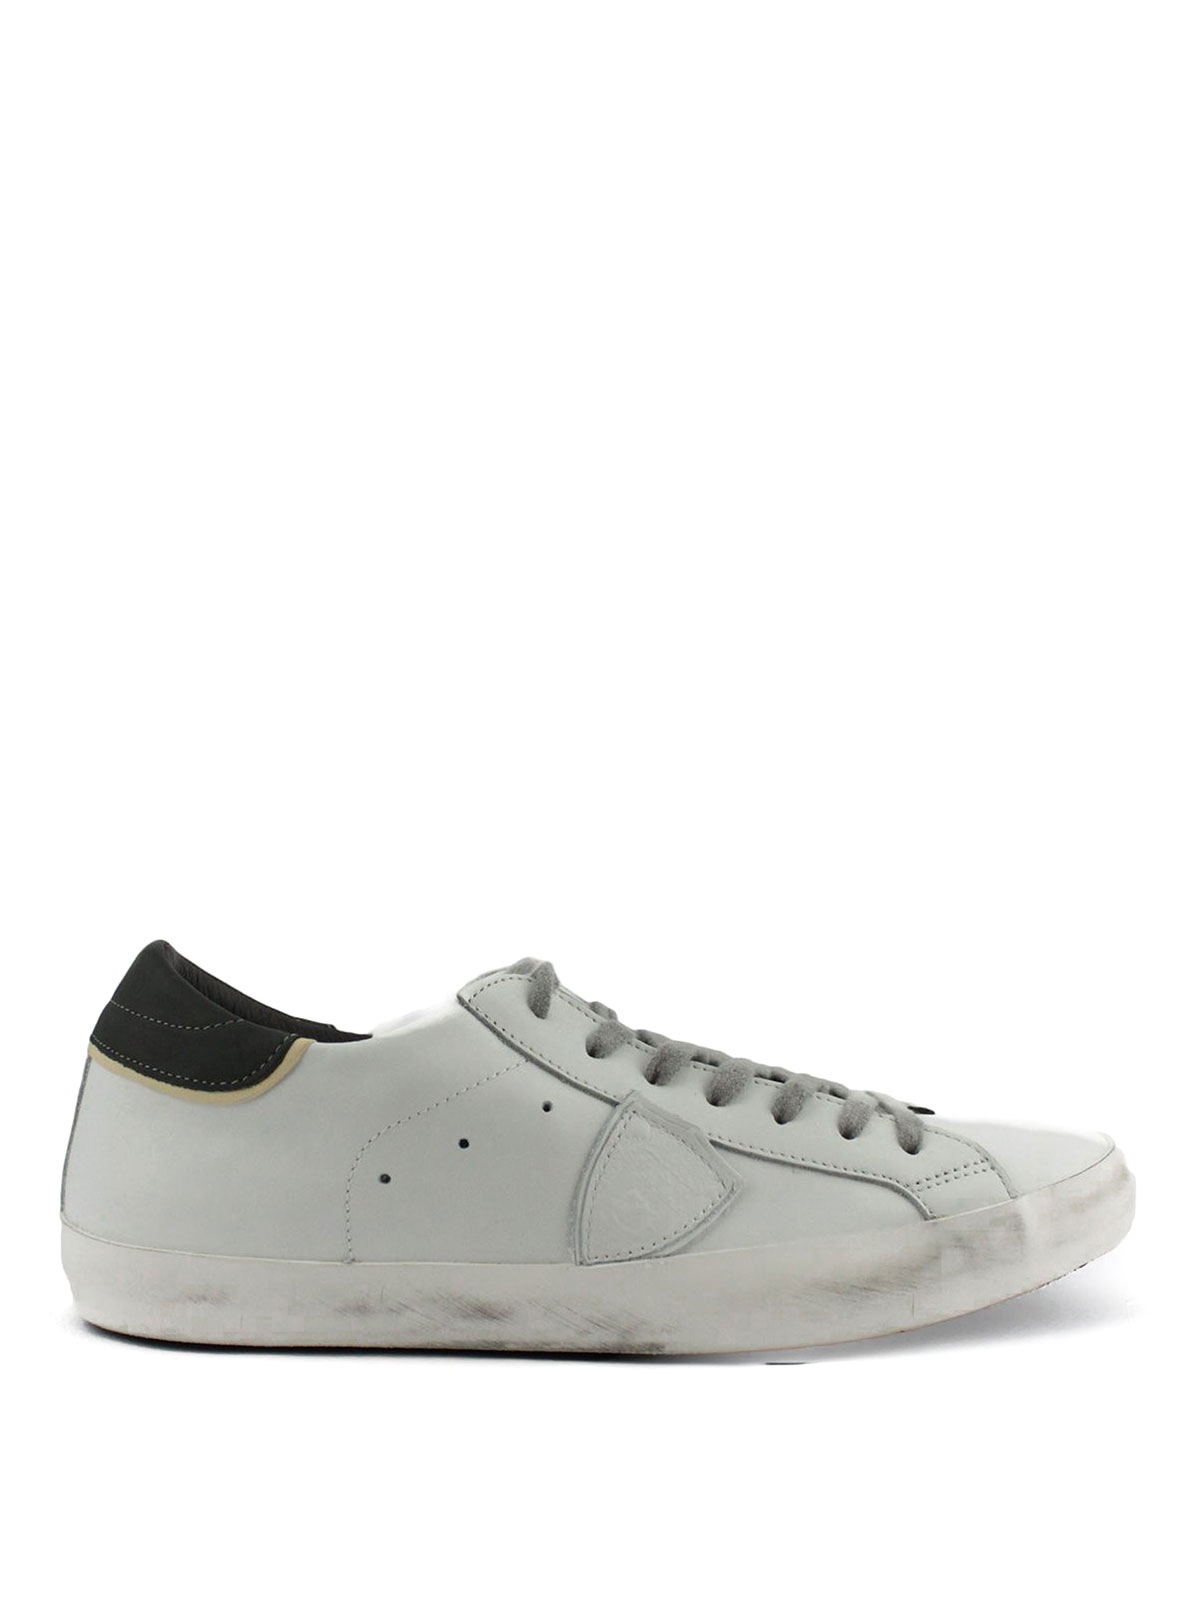 paris leather sneakers by philippe model trainers ikrix. Black Bedroom Furniture Sets. Home Design Ideas